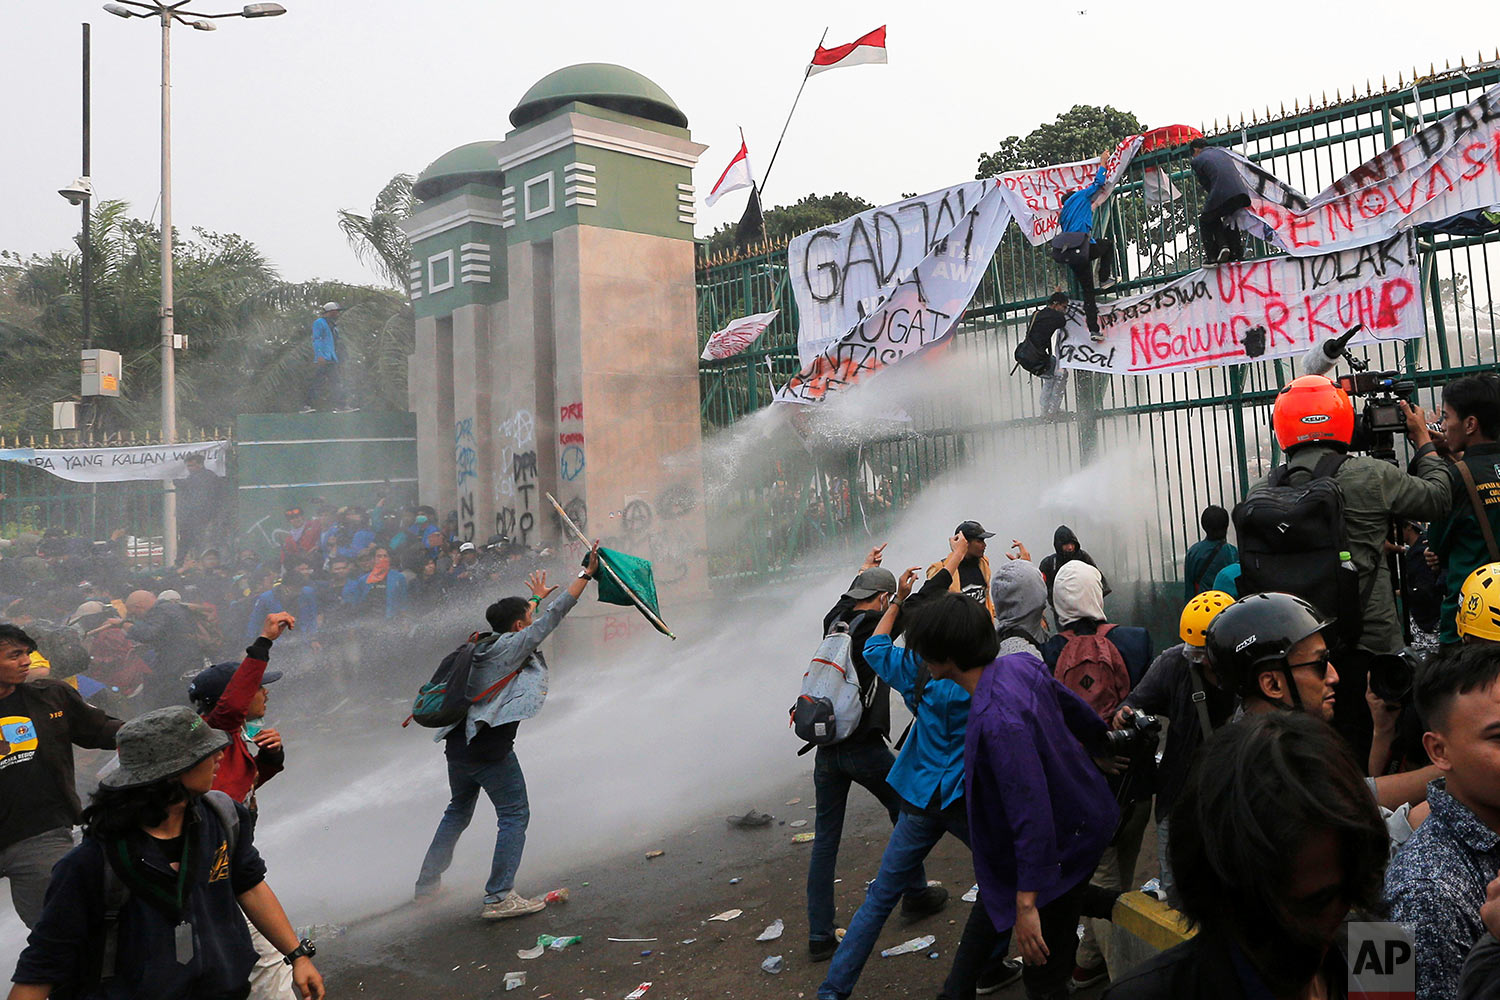 Student protesters are sprayed with water from a police water cannon truck during a protest outside parliament in Jakarta, Indonesia, Tuesday, Sept. 24, 2019. Police fired tear gas and water cannons to disperse thousands of demonstrators protesting a new law that they said has crippled Indonesia's anti-corruption agency. (AP Photo/Tatan Syuflana))